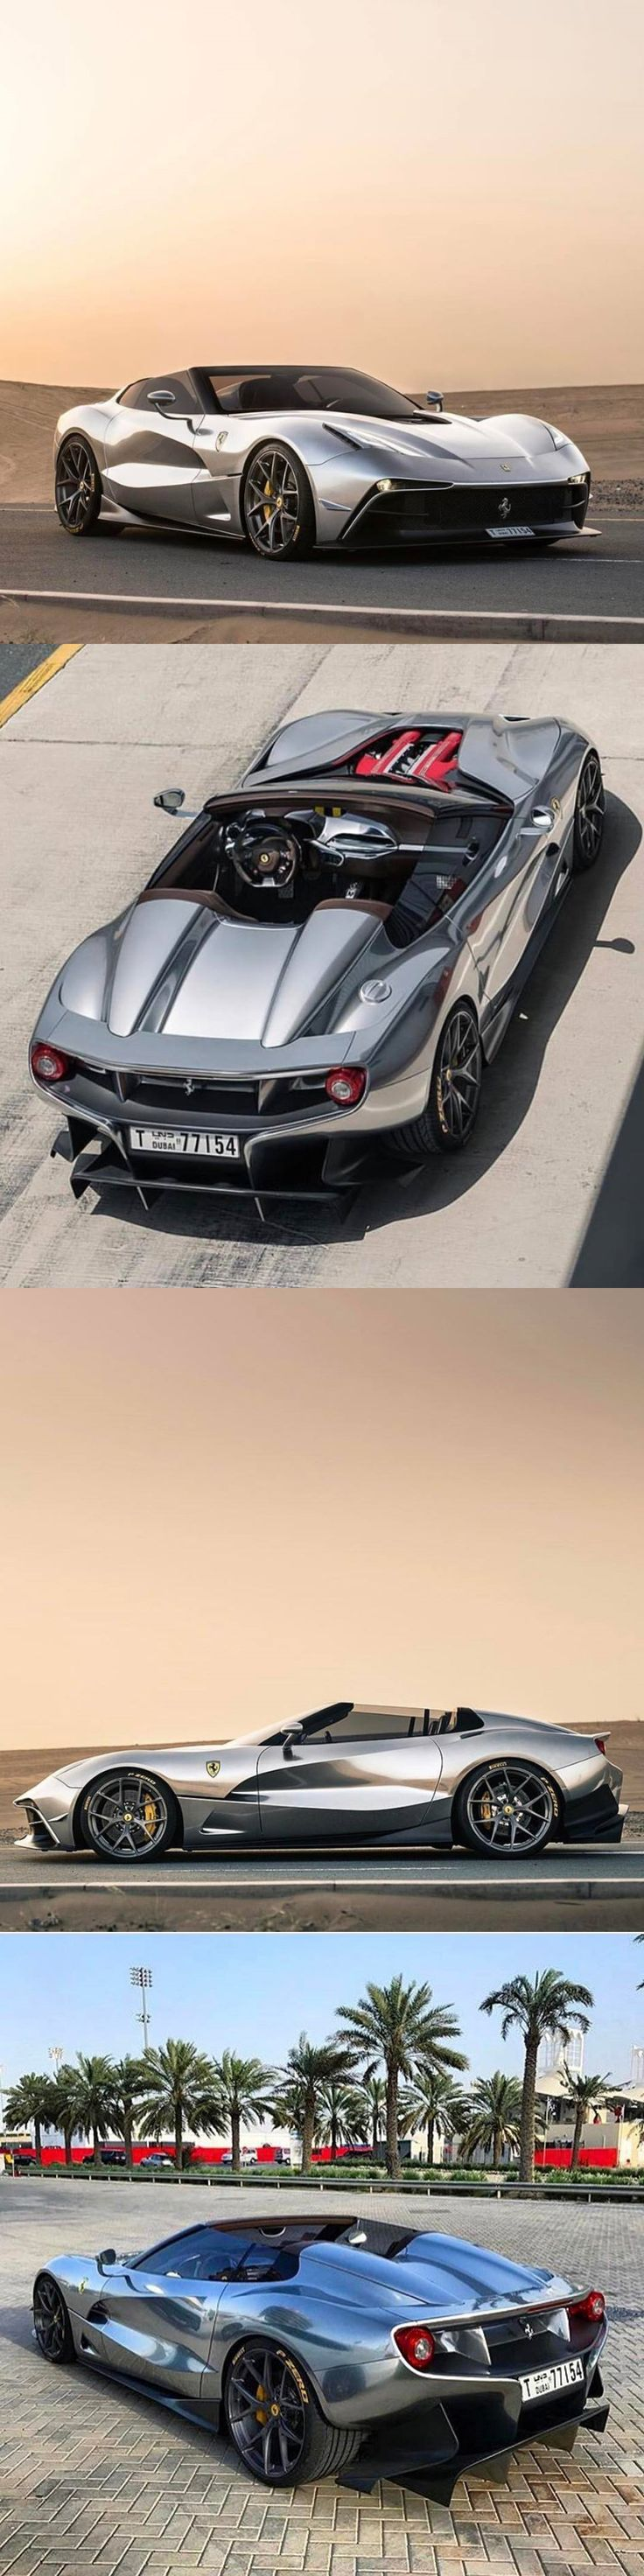 2014 Ferrari F12 TRS / $ 4.2 mio / 1 of 2 produced / Italy / silver chrome / 17-433